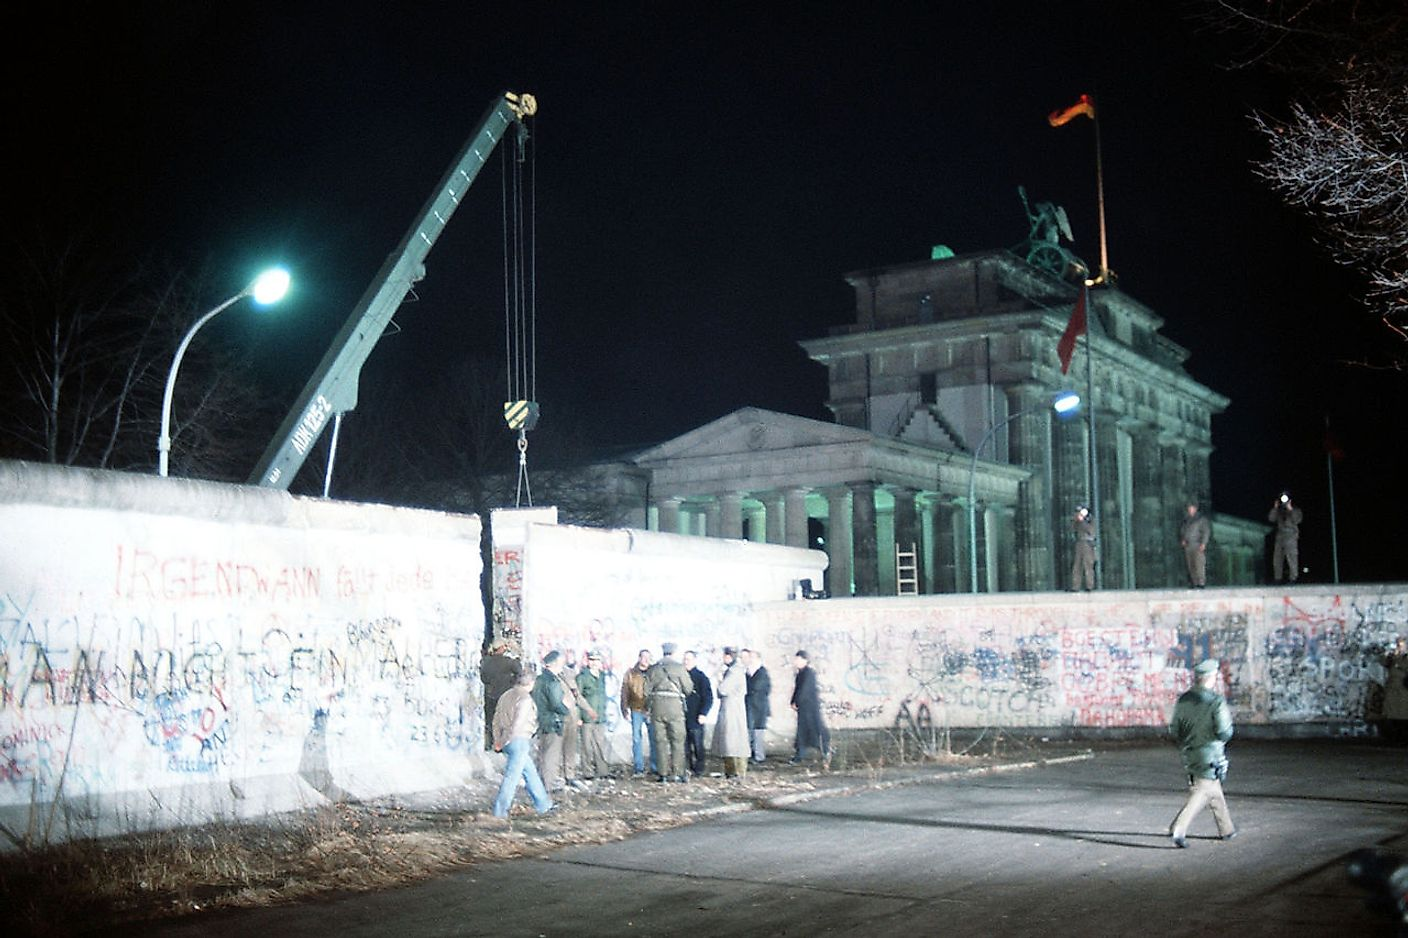 A crane removes a section of the Wall near Brandenburg Gate on 21 December 1989. Image credit: SSGT F. Lee Corkran/Public domain